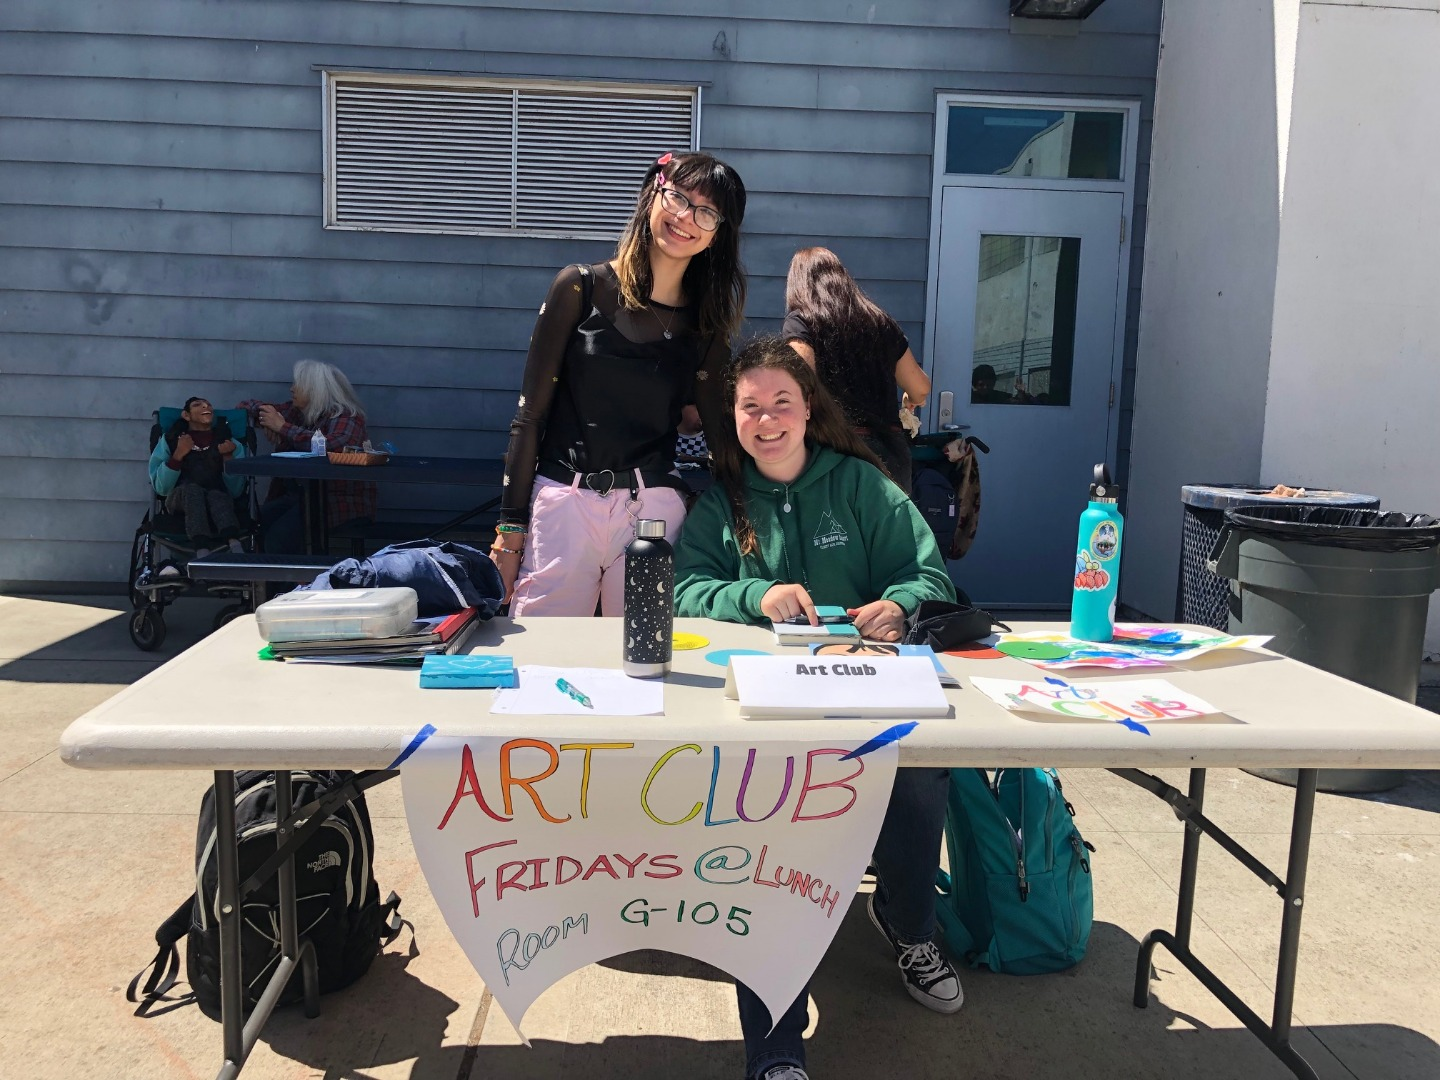 Art Club at Club Rush